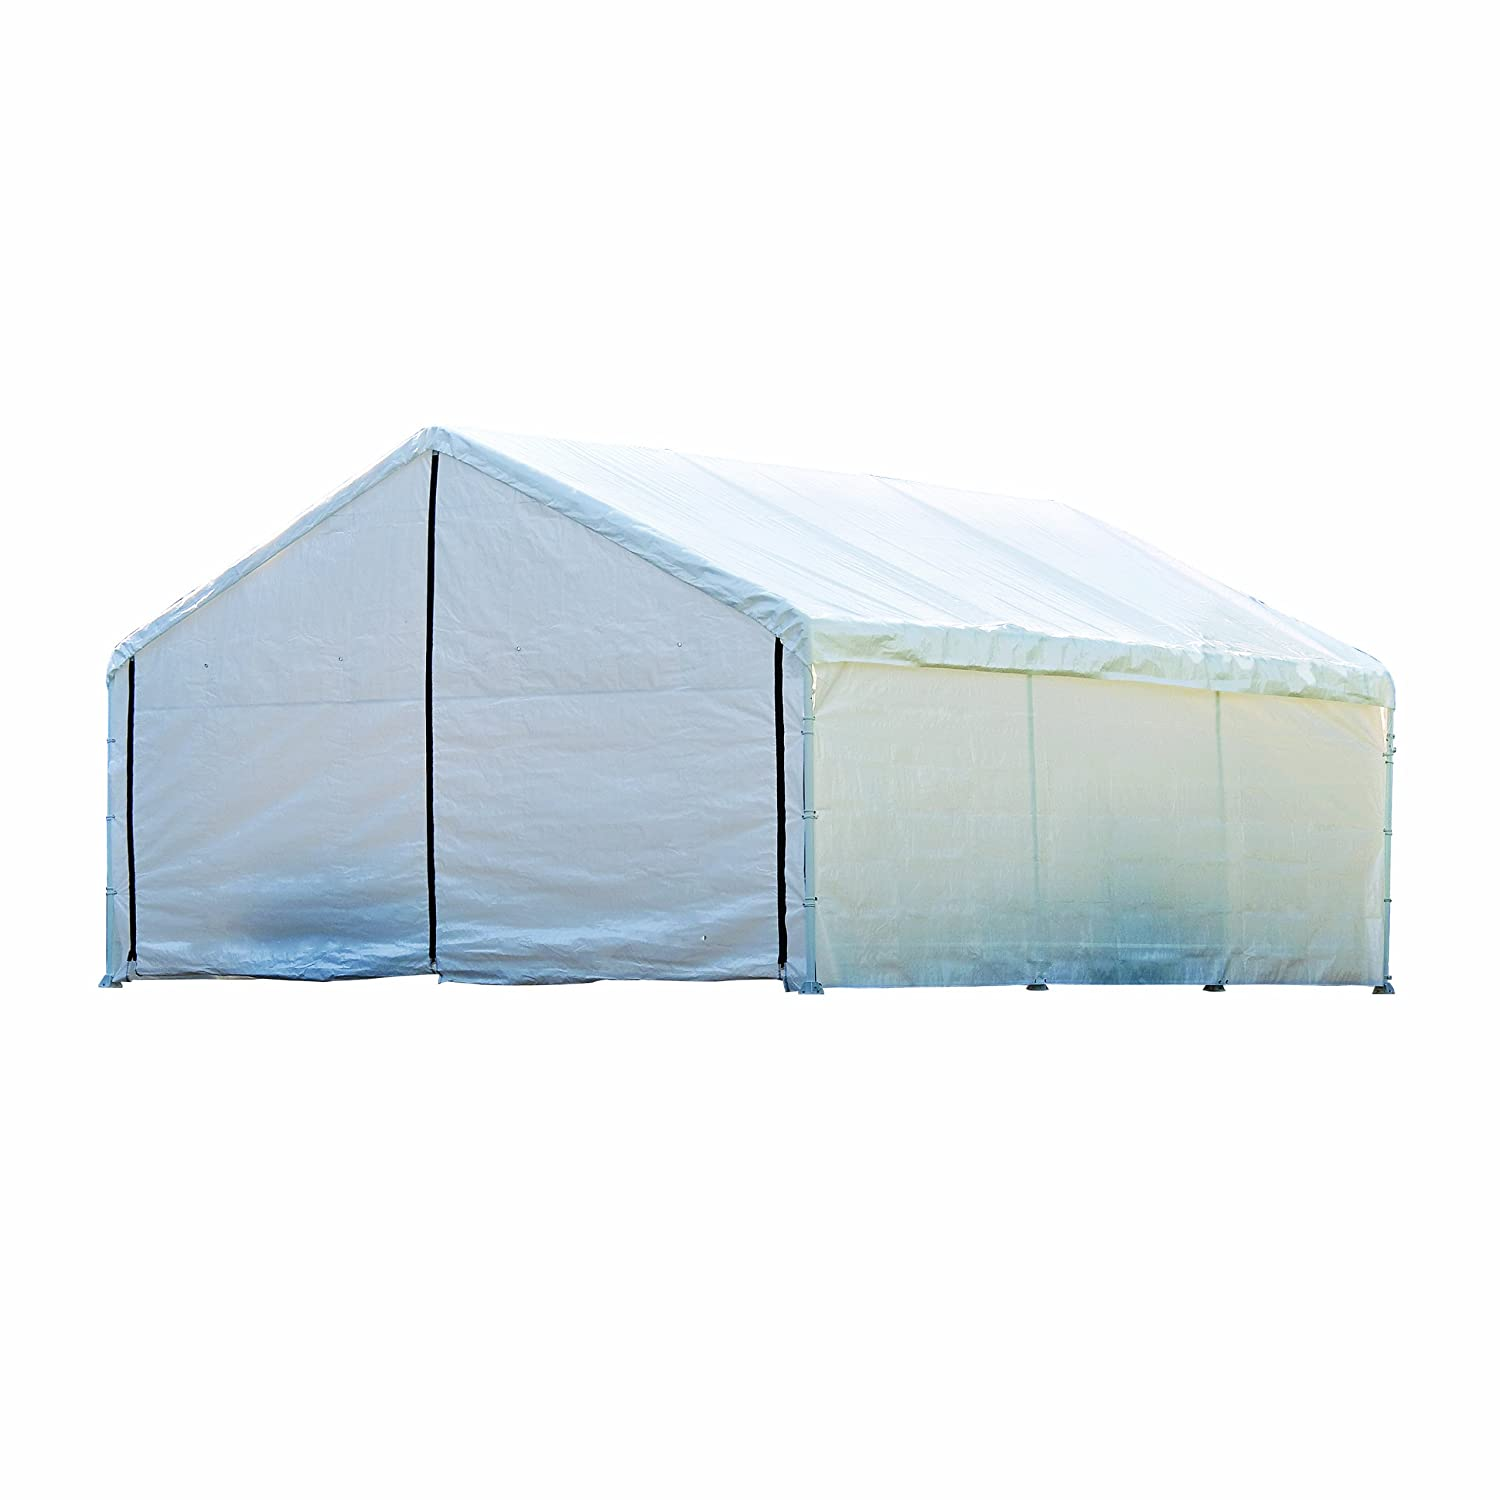 Amazon.com ShelterLogic Canopy Enclosure Kit 18x30-Feet White Sports u0026 Outdoors  sc 1 st  Amazon.com & Amazon.com: ShelterLogic Canopy Enclosure Kit 18x30-Feet White ...